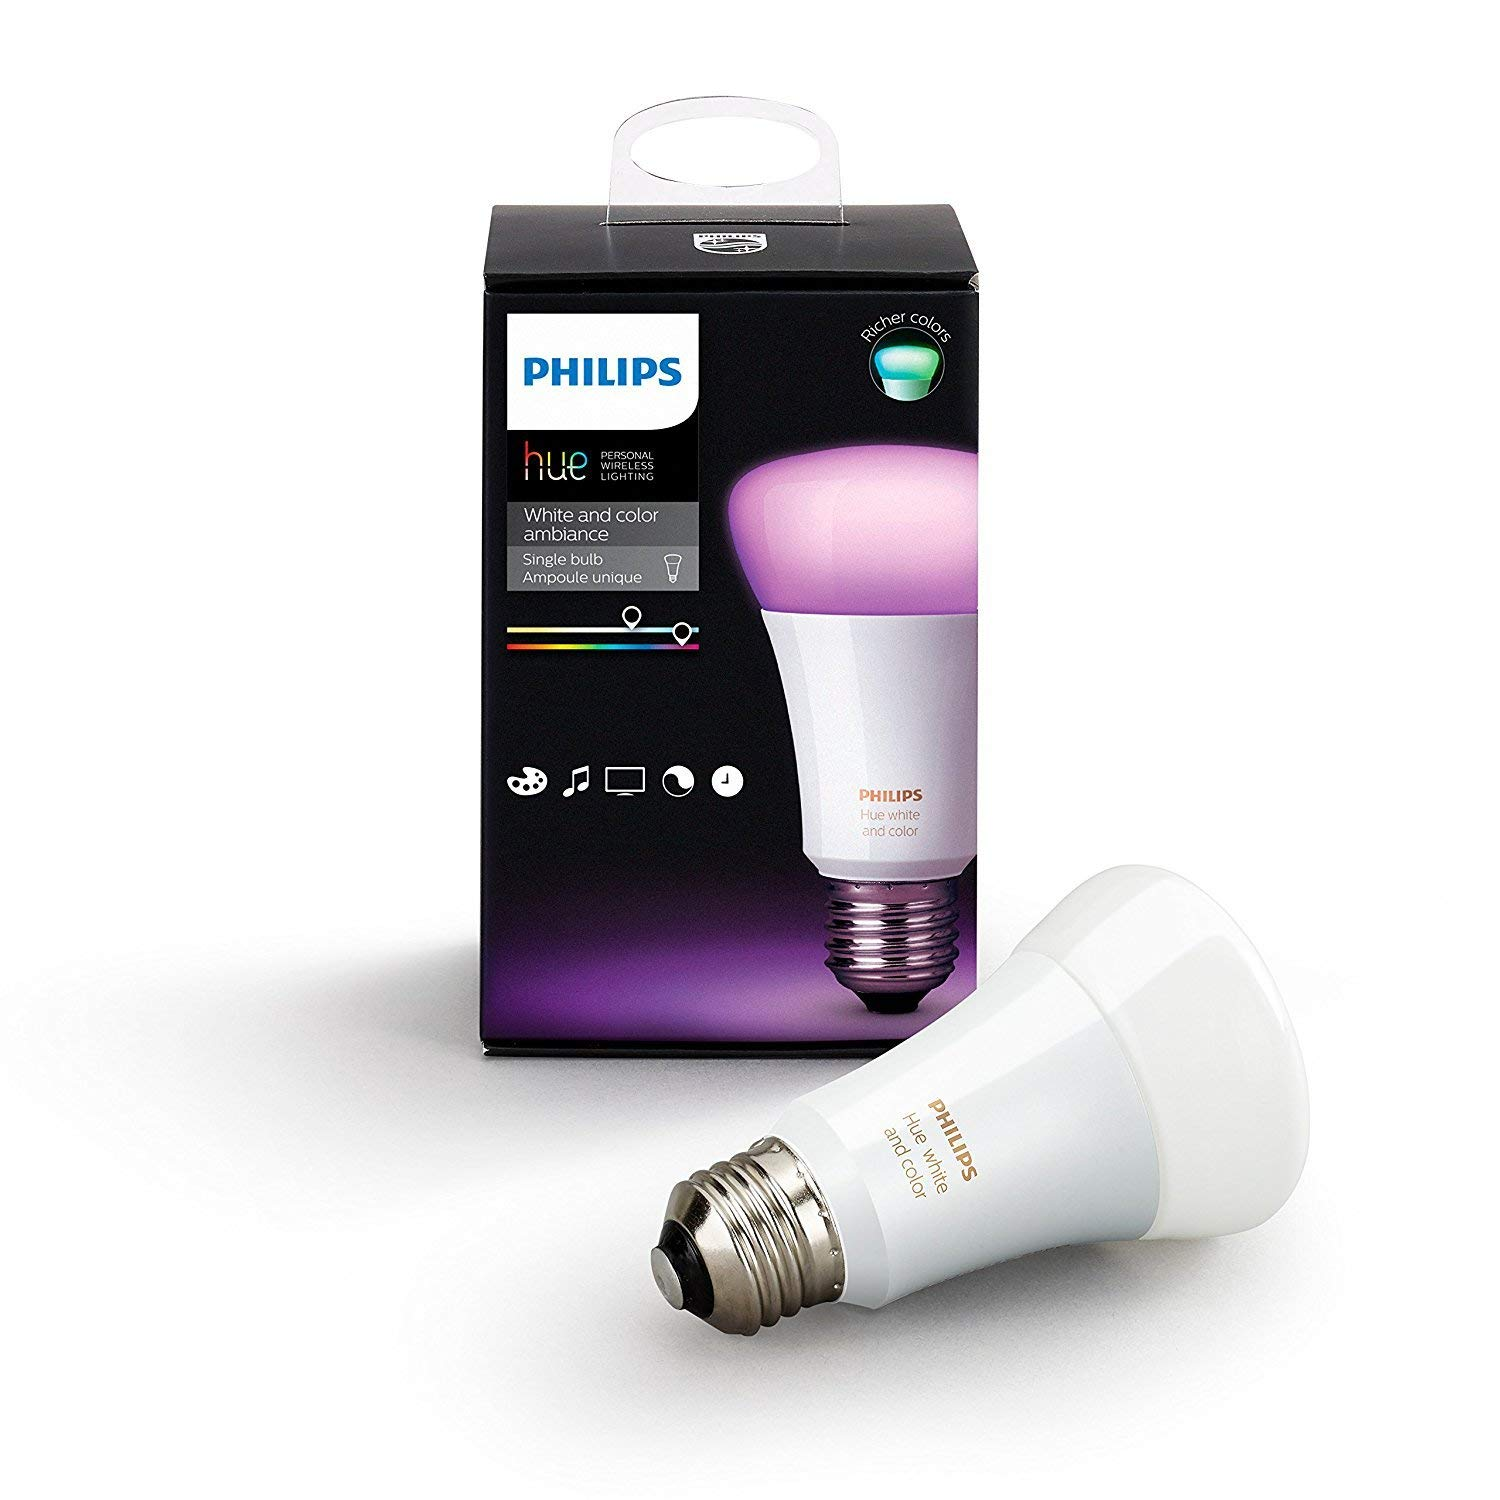 Philips Hue White and Color LED Smart Bulb